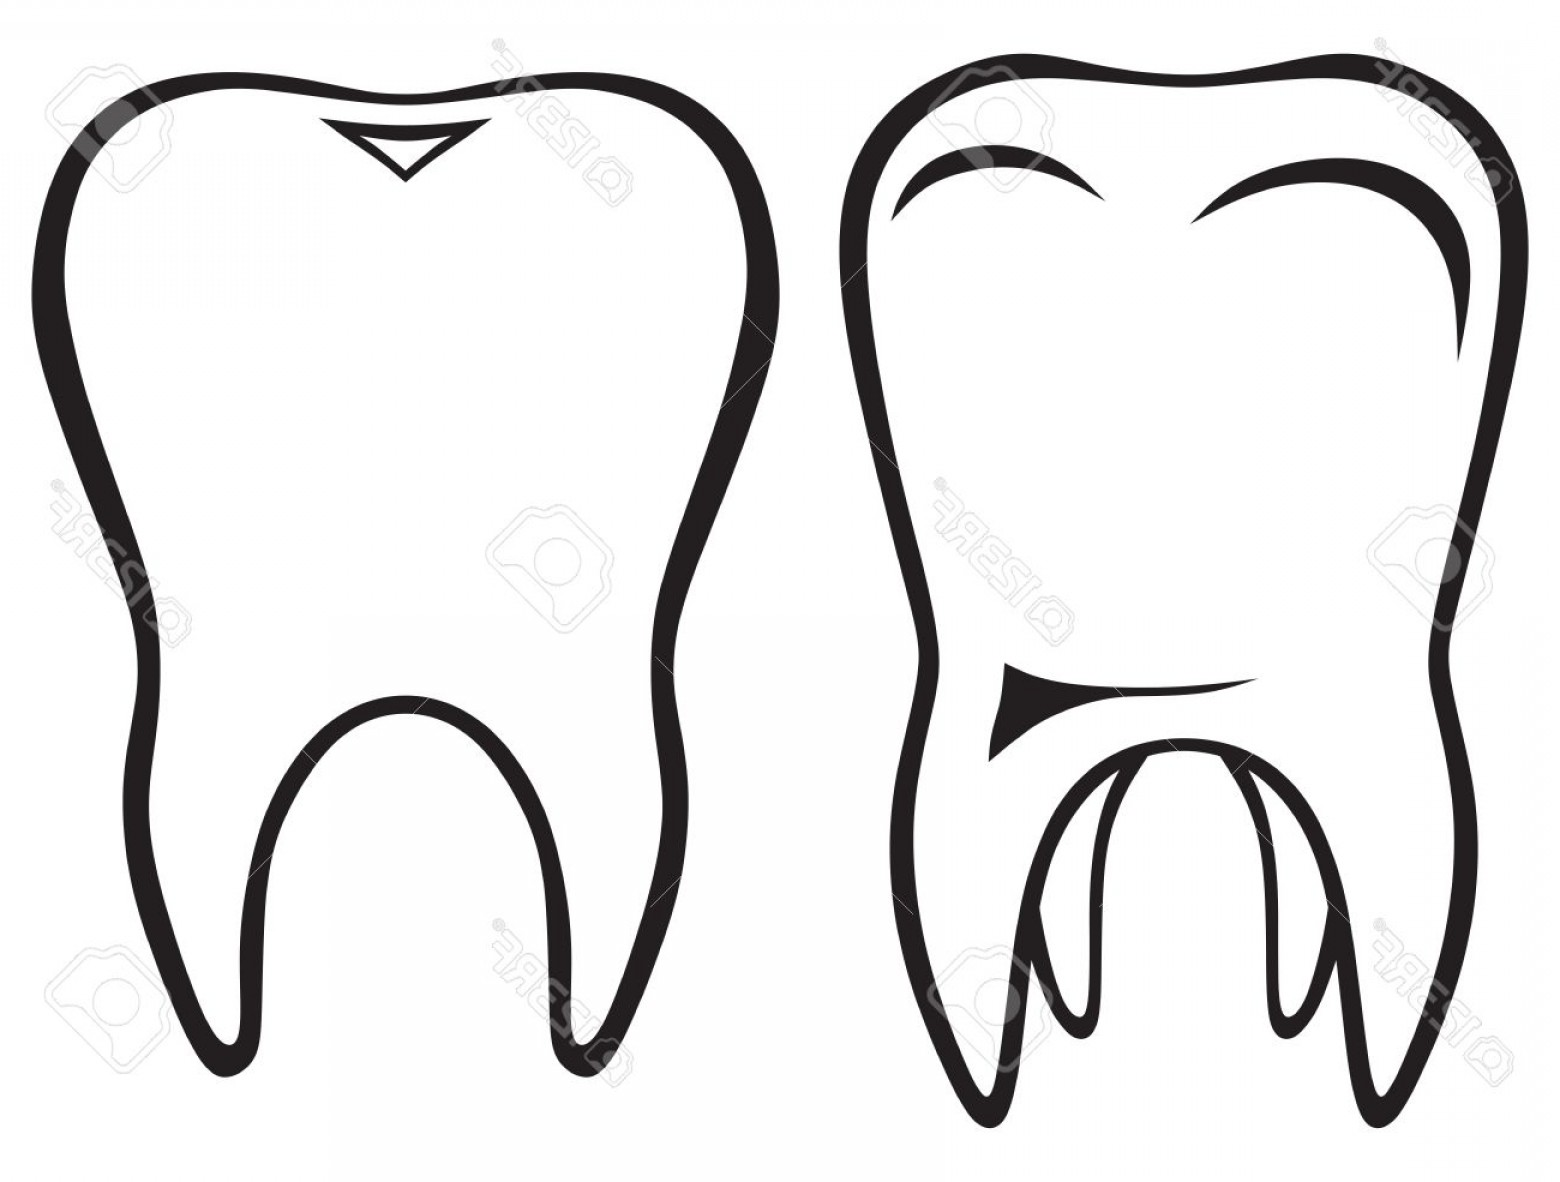 Tooth Outline Vector: Phototooth Isolated On White Background Silhouette